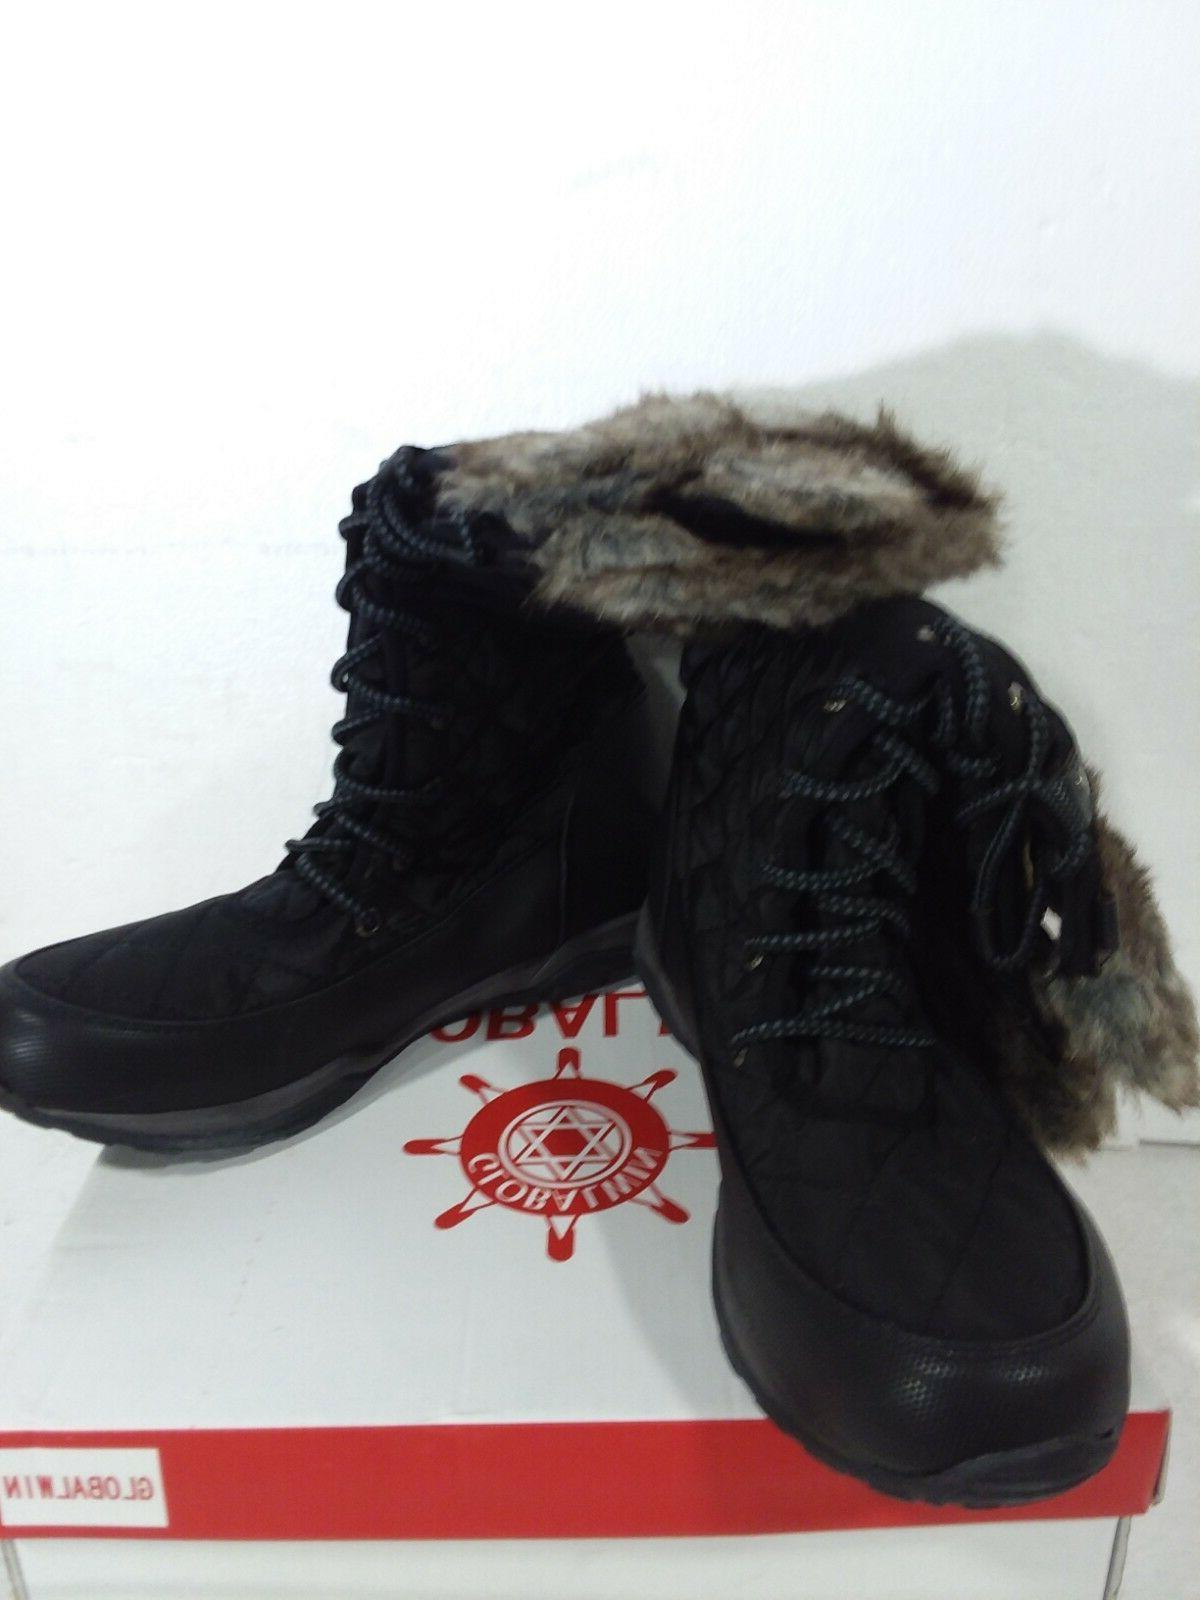 GLOBALWIN Fashion Snow Boots black 8